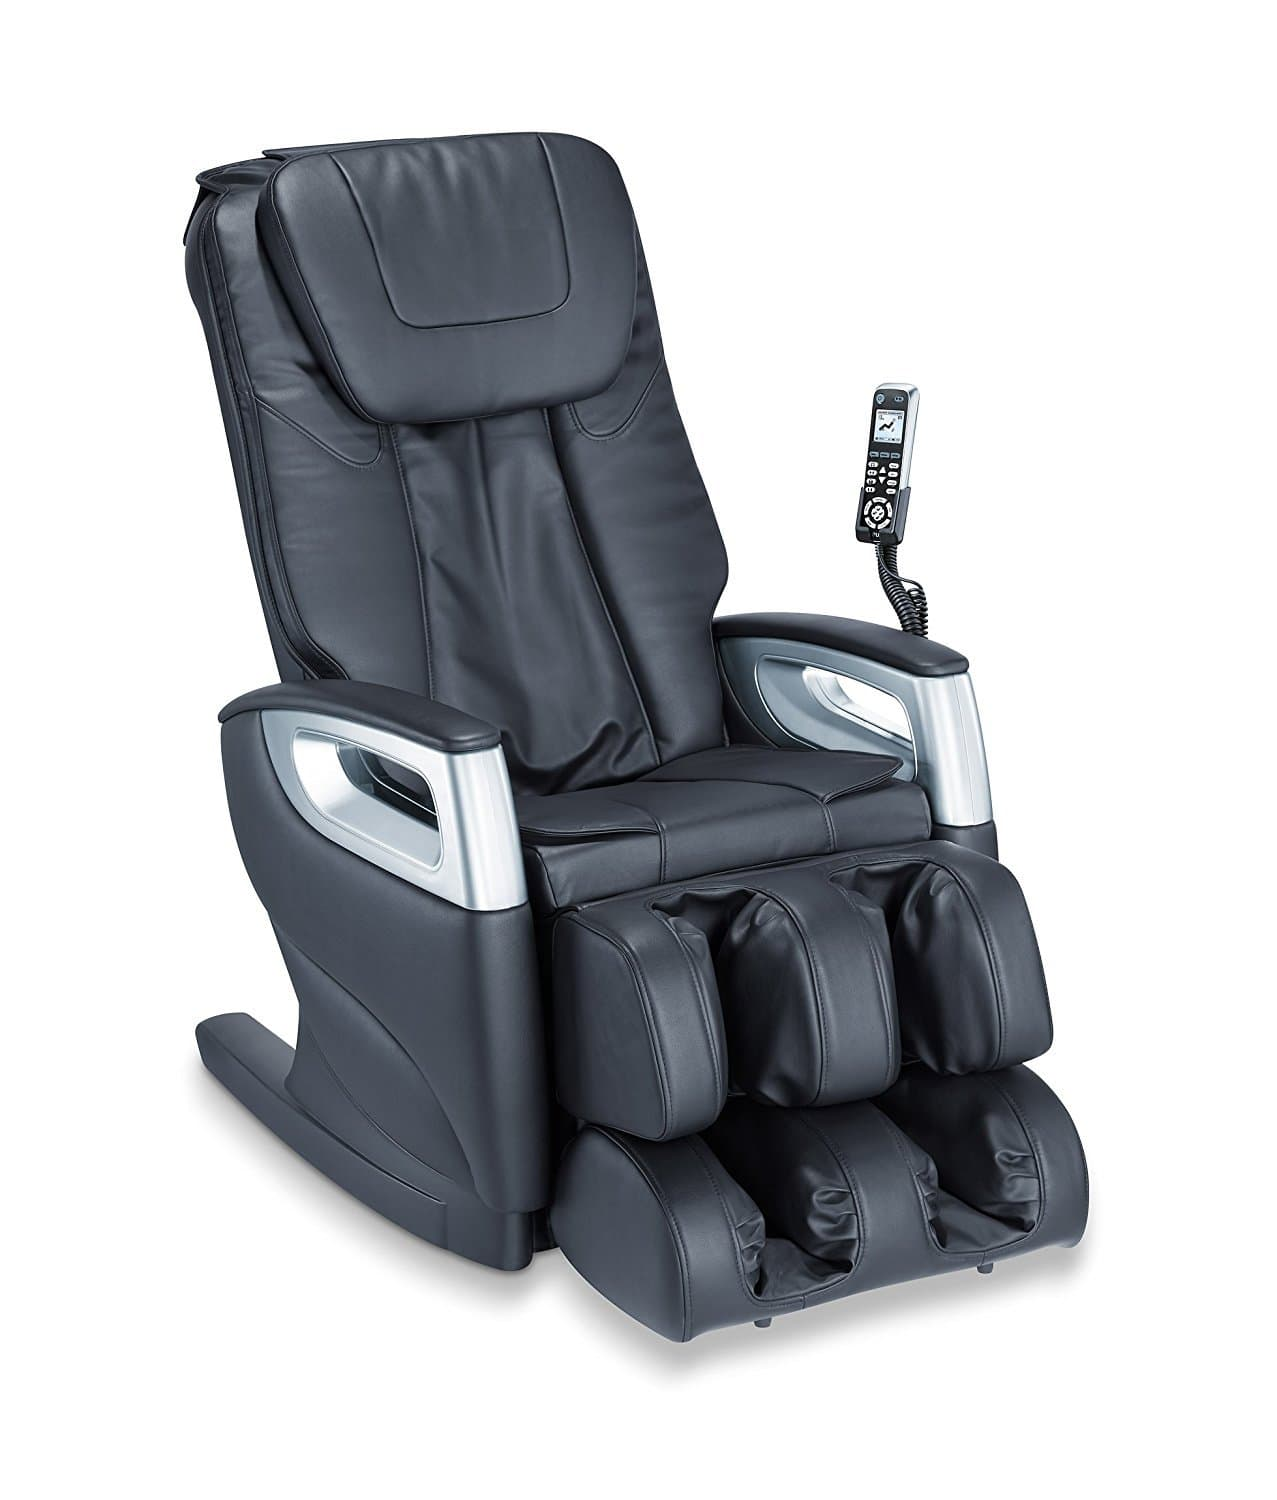 Stressless Sessel Defekt Massagesessel Test Auf Oe24 At Test Vergleich 2019